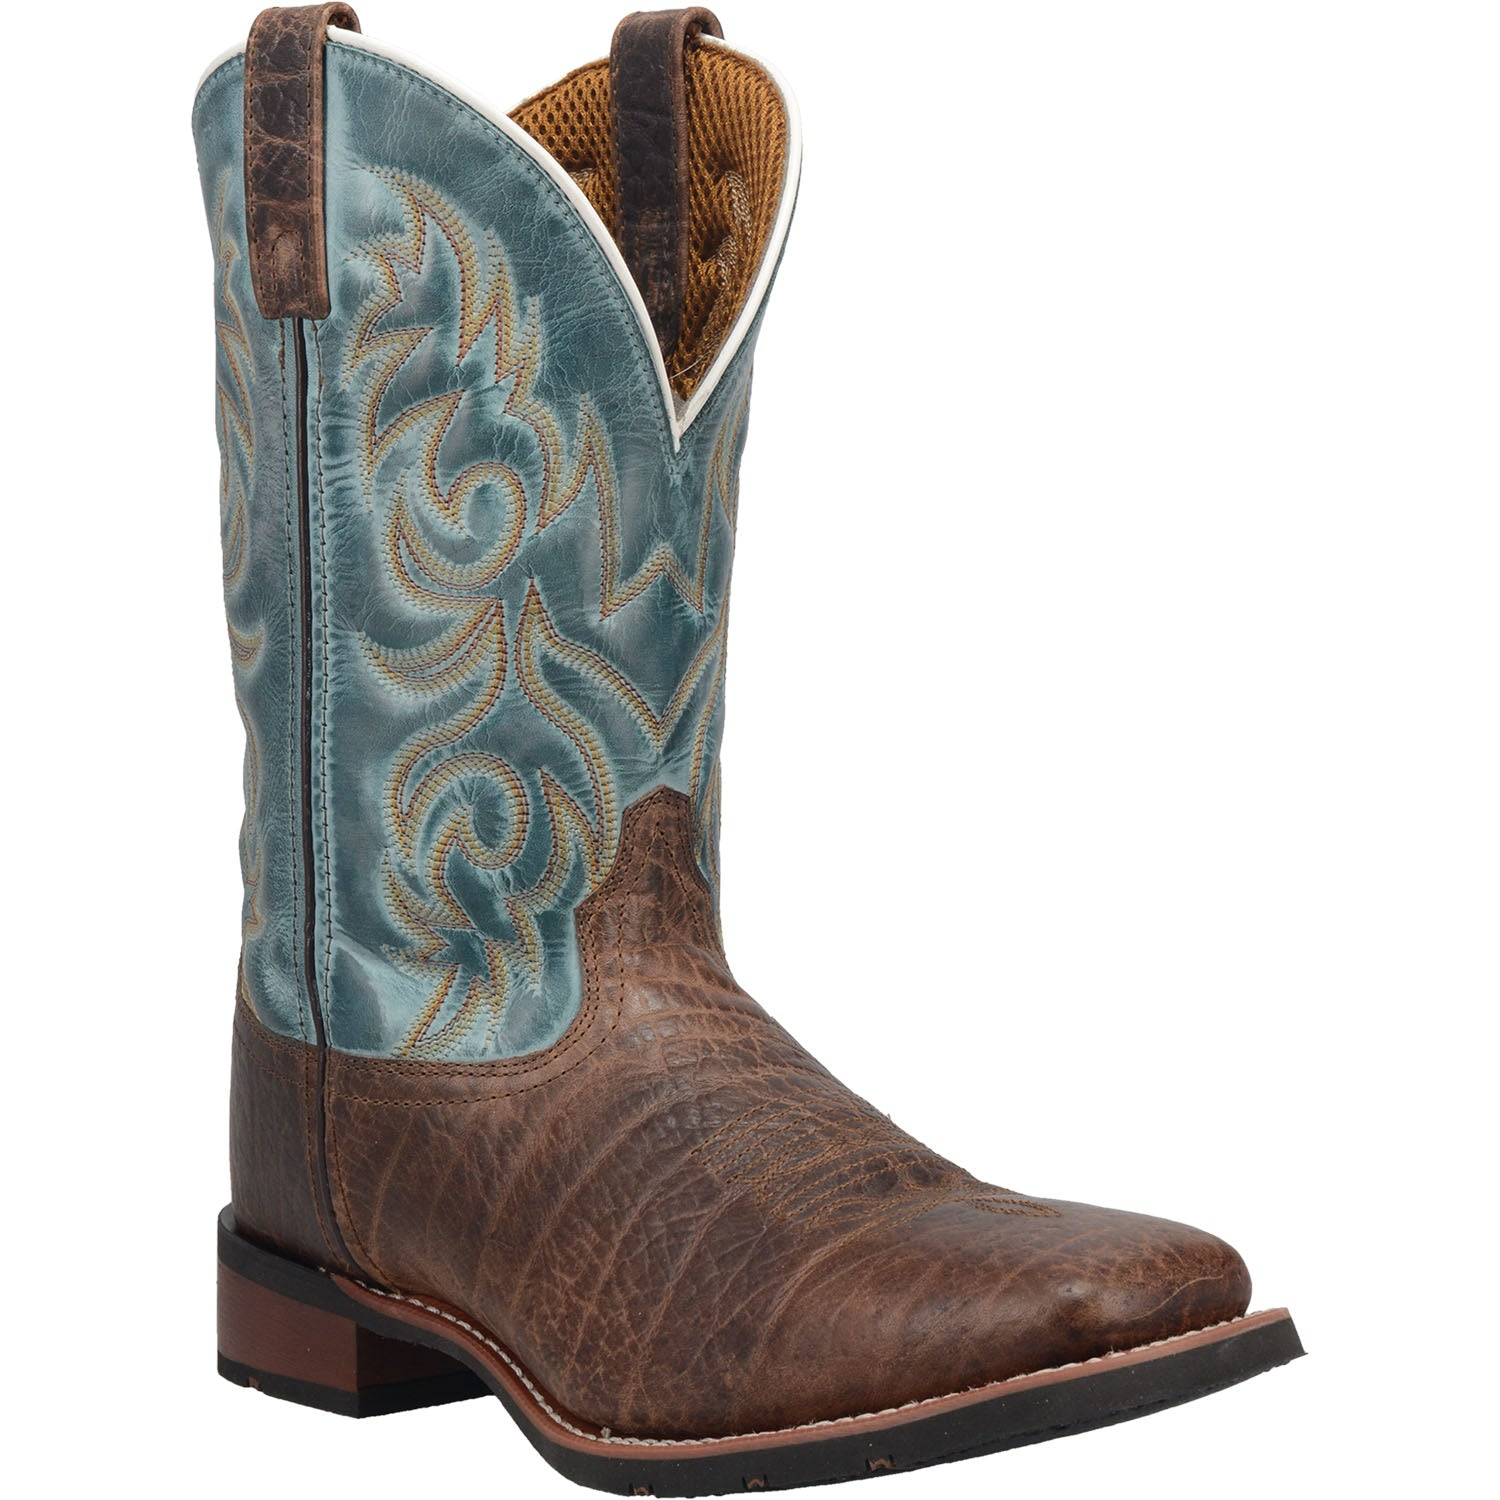 BISBEE LEATHER BOOT 28111096512554